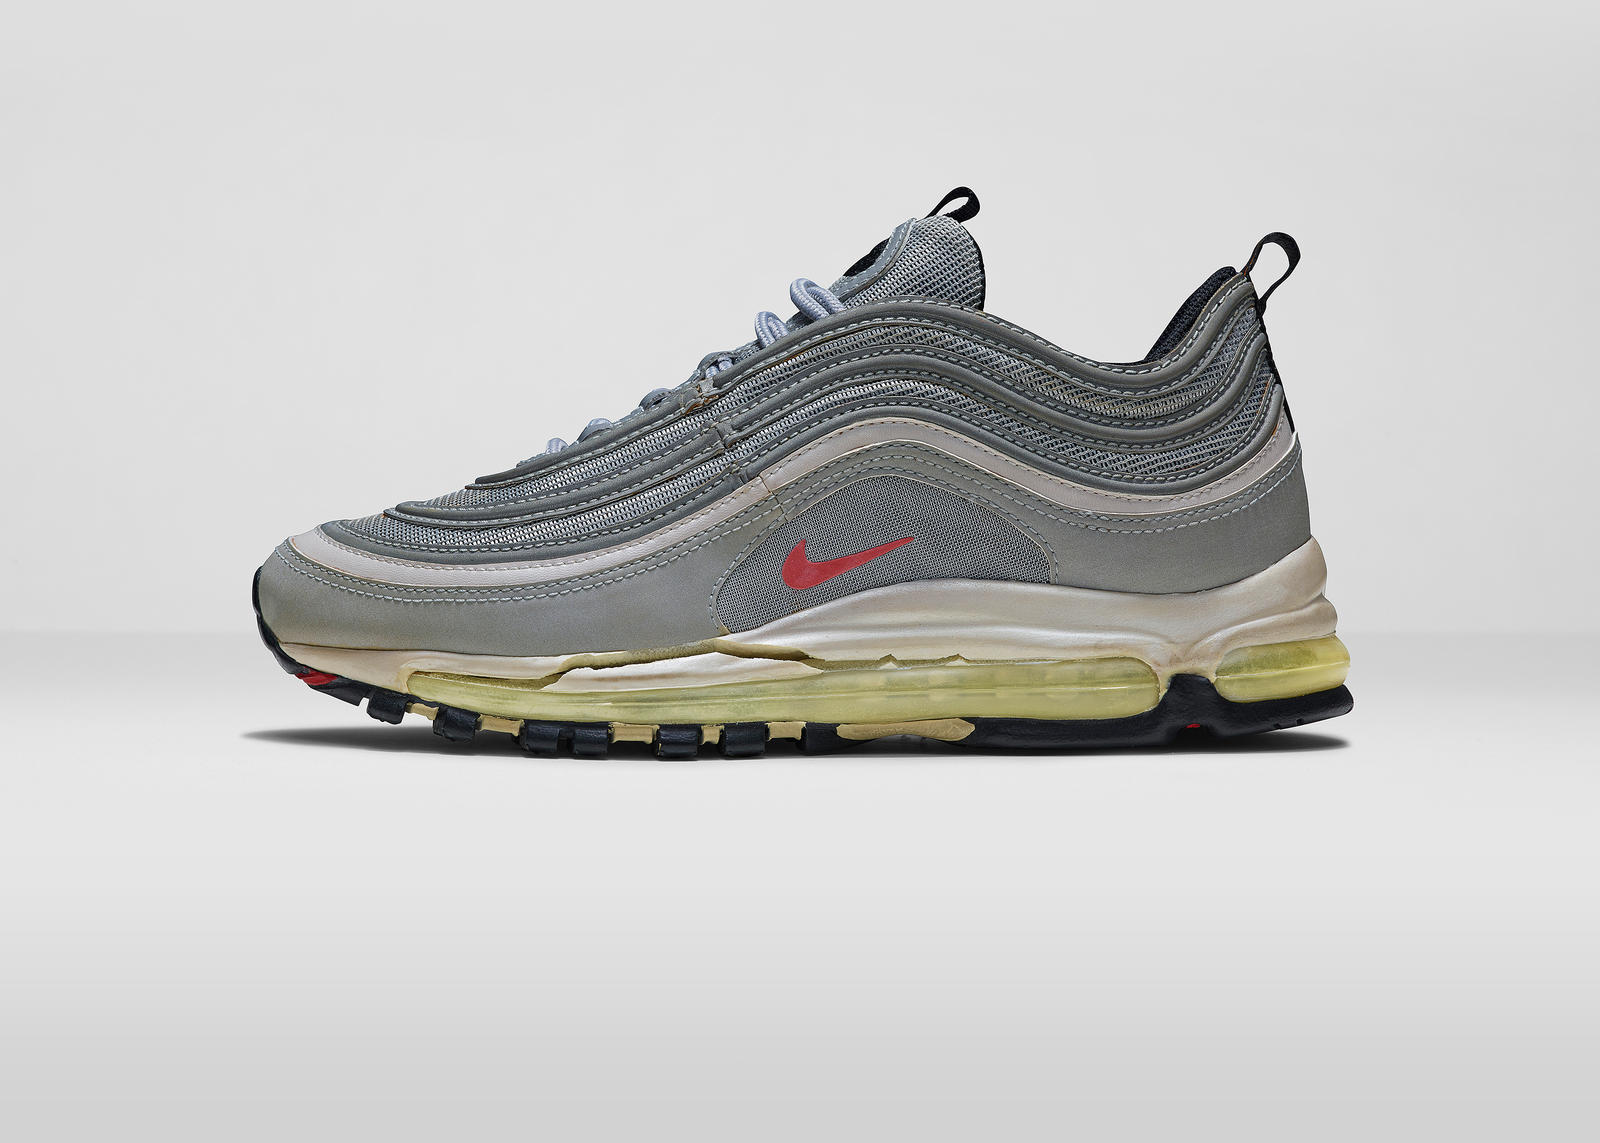 new product 15f20 ec377 Air Max 97. Nike_AirMaxDay_2015_1997_LAT. Nike Air Max Day 2015 ...